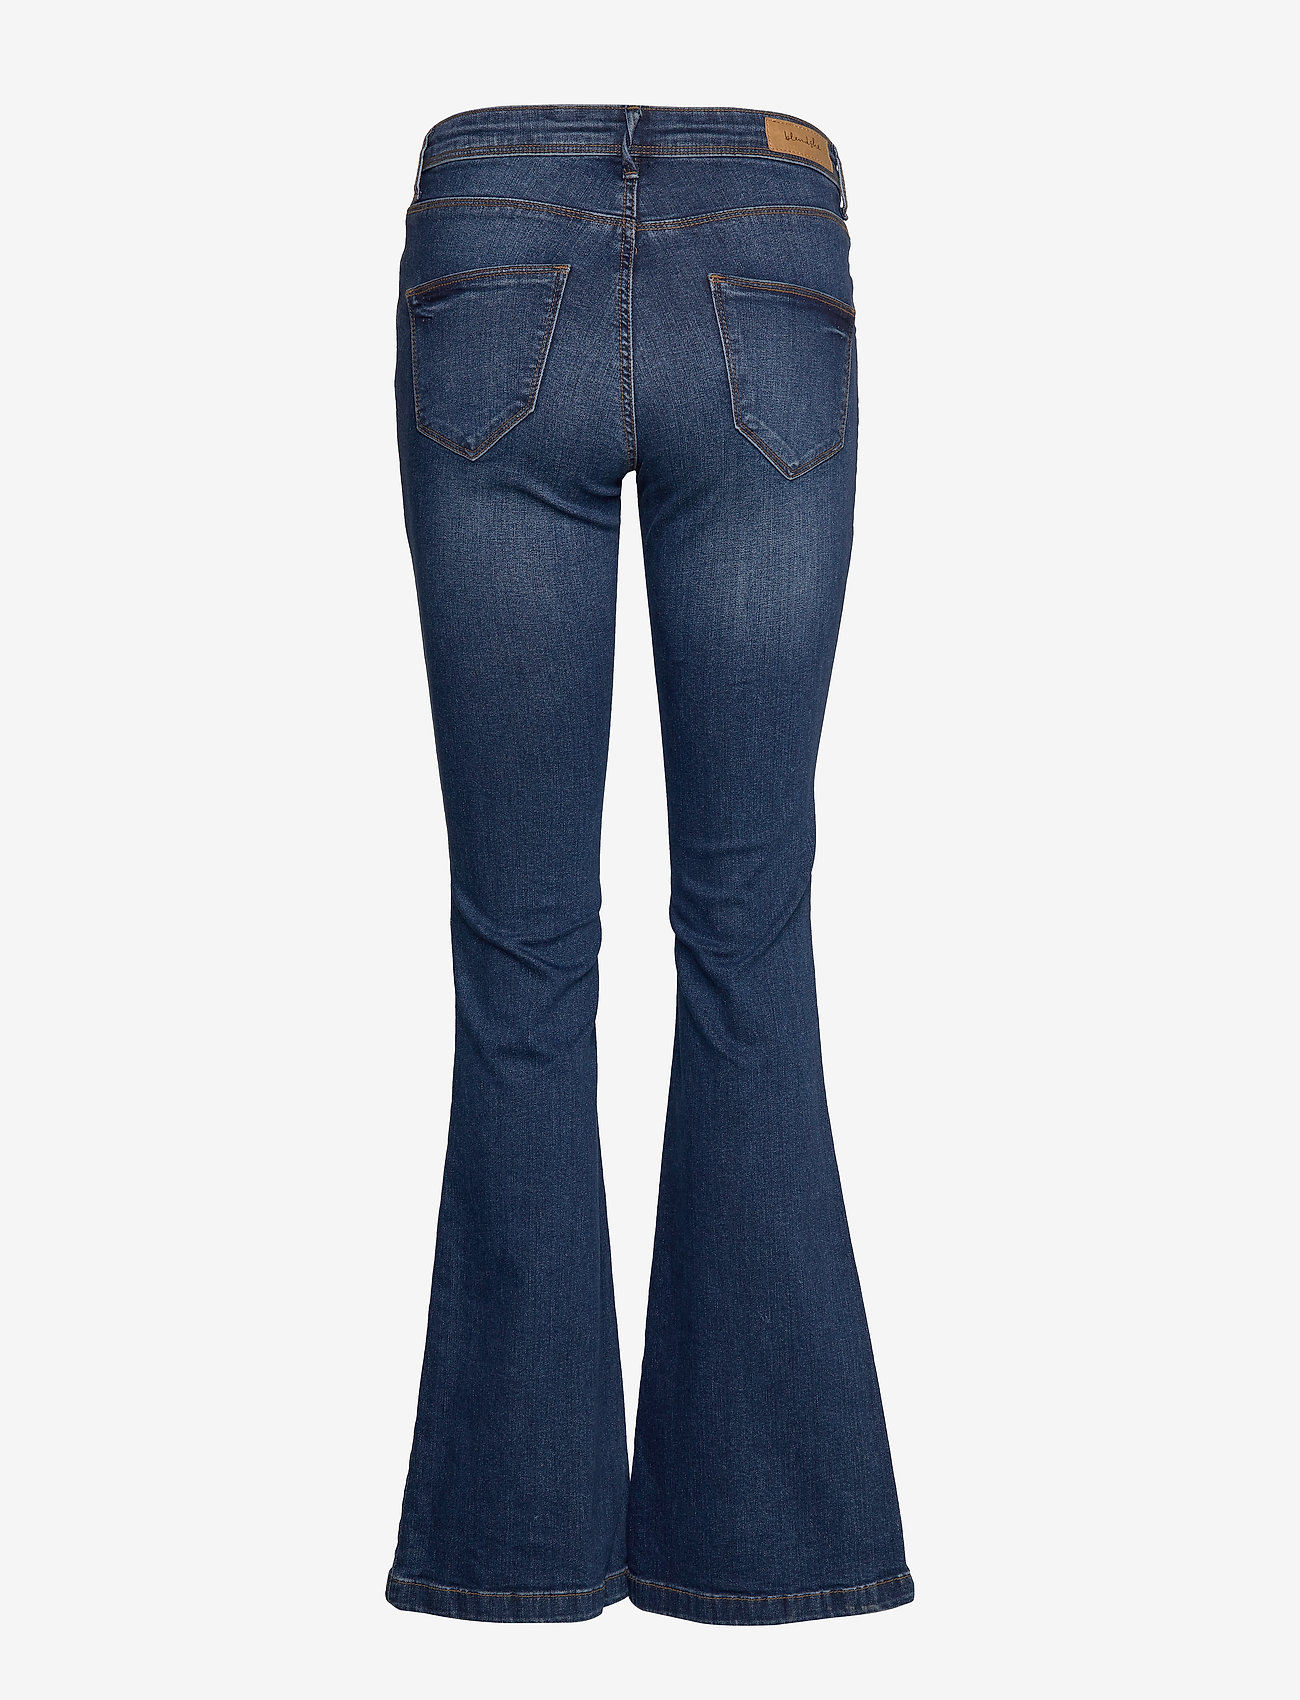 Blend She - BSWINT BRIGHT FLARED JE - flared jeans - indigo blue washed - 1